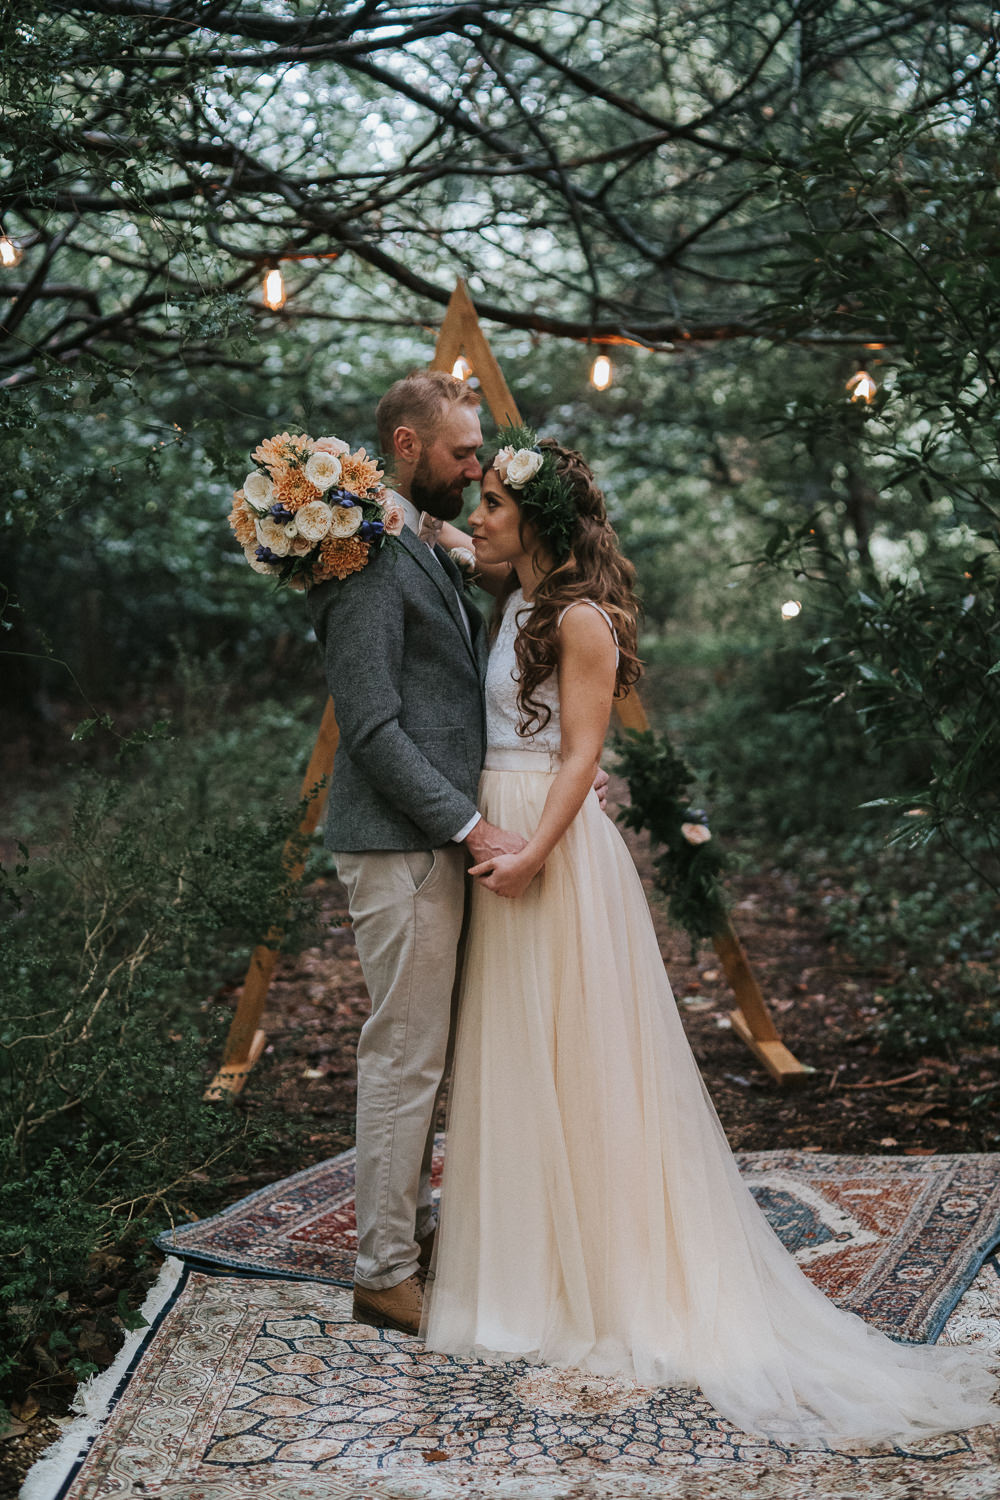 Backdrop Triangle Wooden Festoon Lights Rugs Ceremony Aisle Woodland Wedding Inspiration Stephanie Dreams Photography